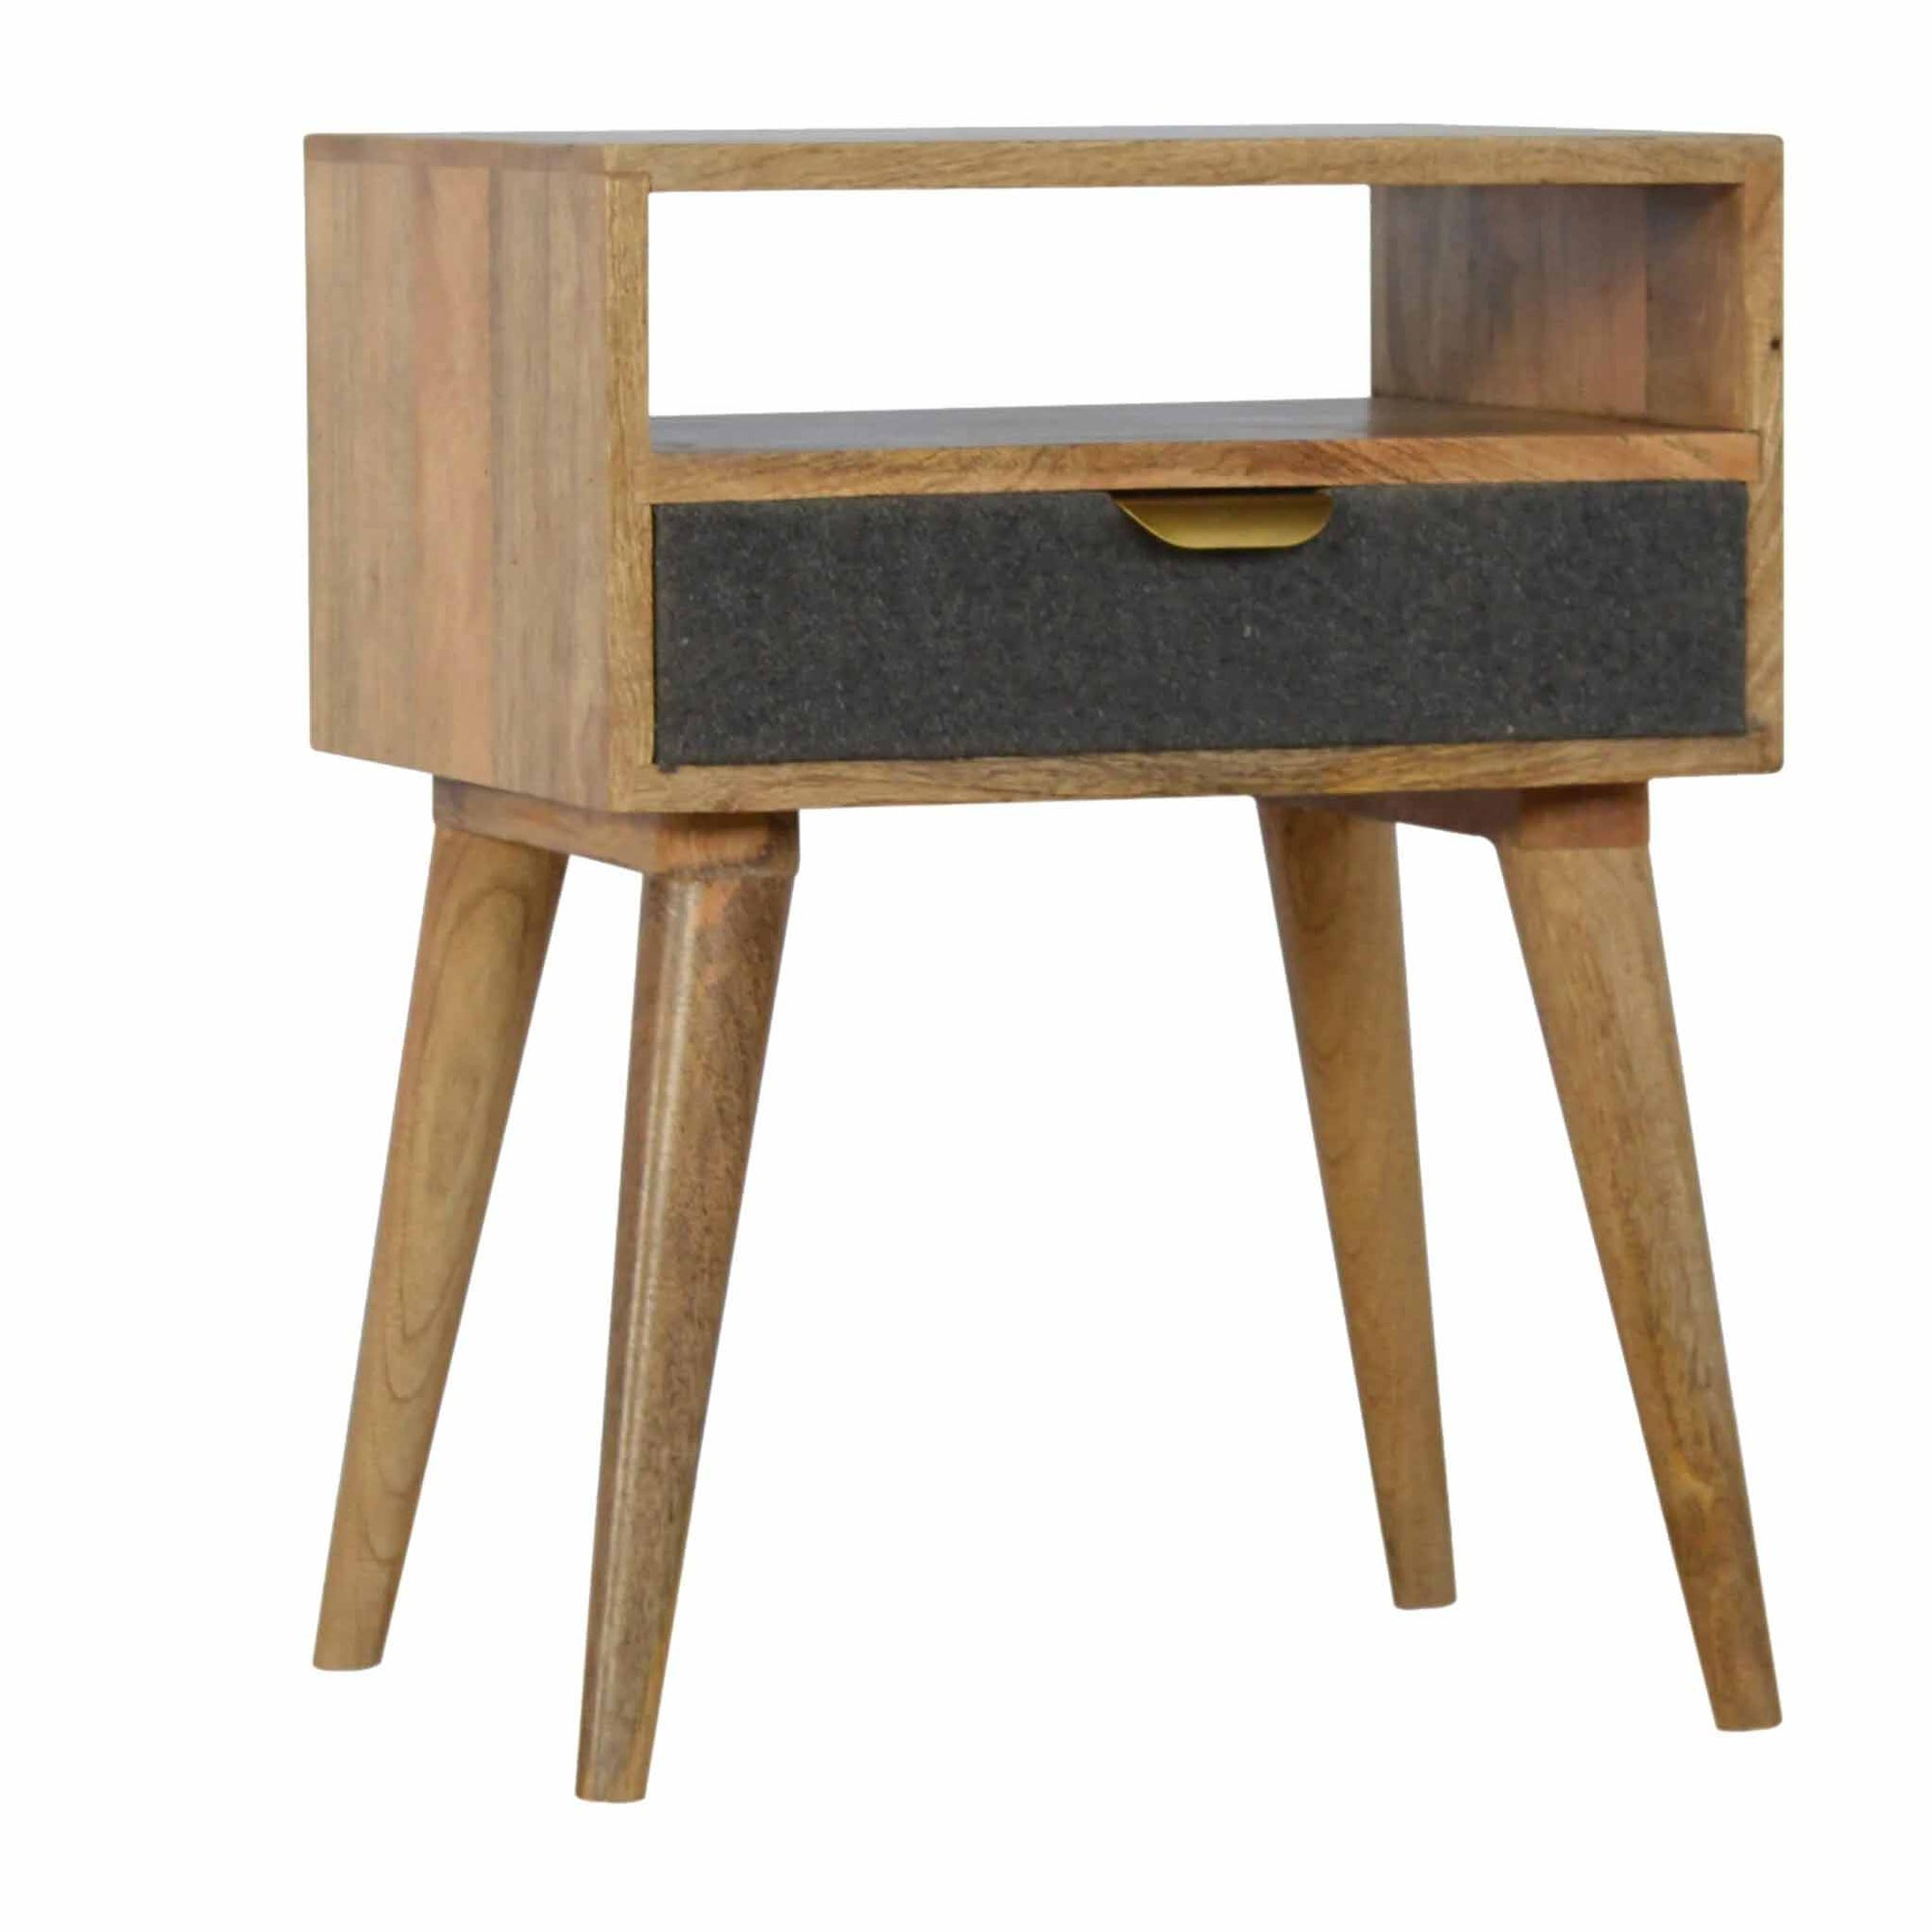 The Artisan Scandinavian Wooden Bedside Table with 1 Tweed Fabric Drawer from Roseland Furniture